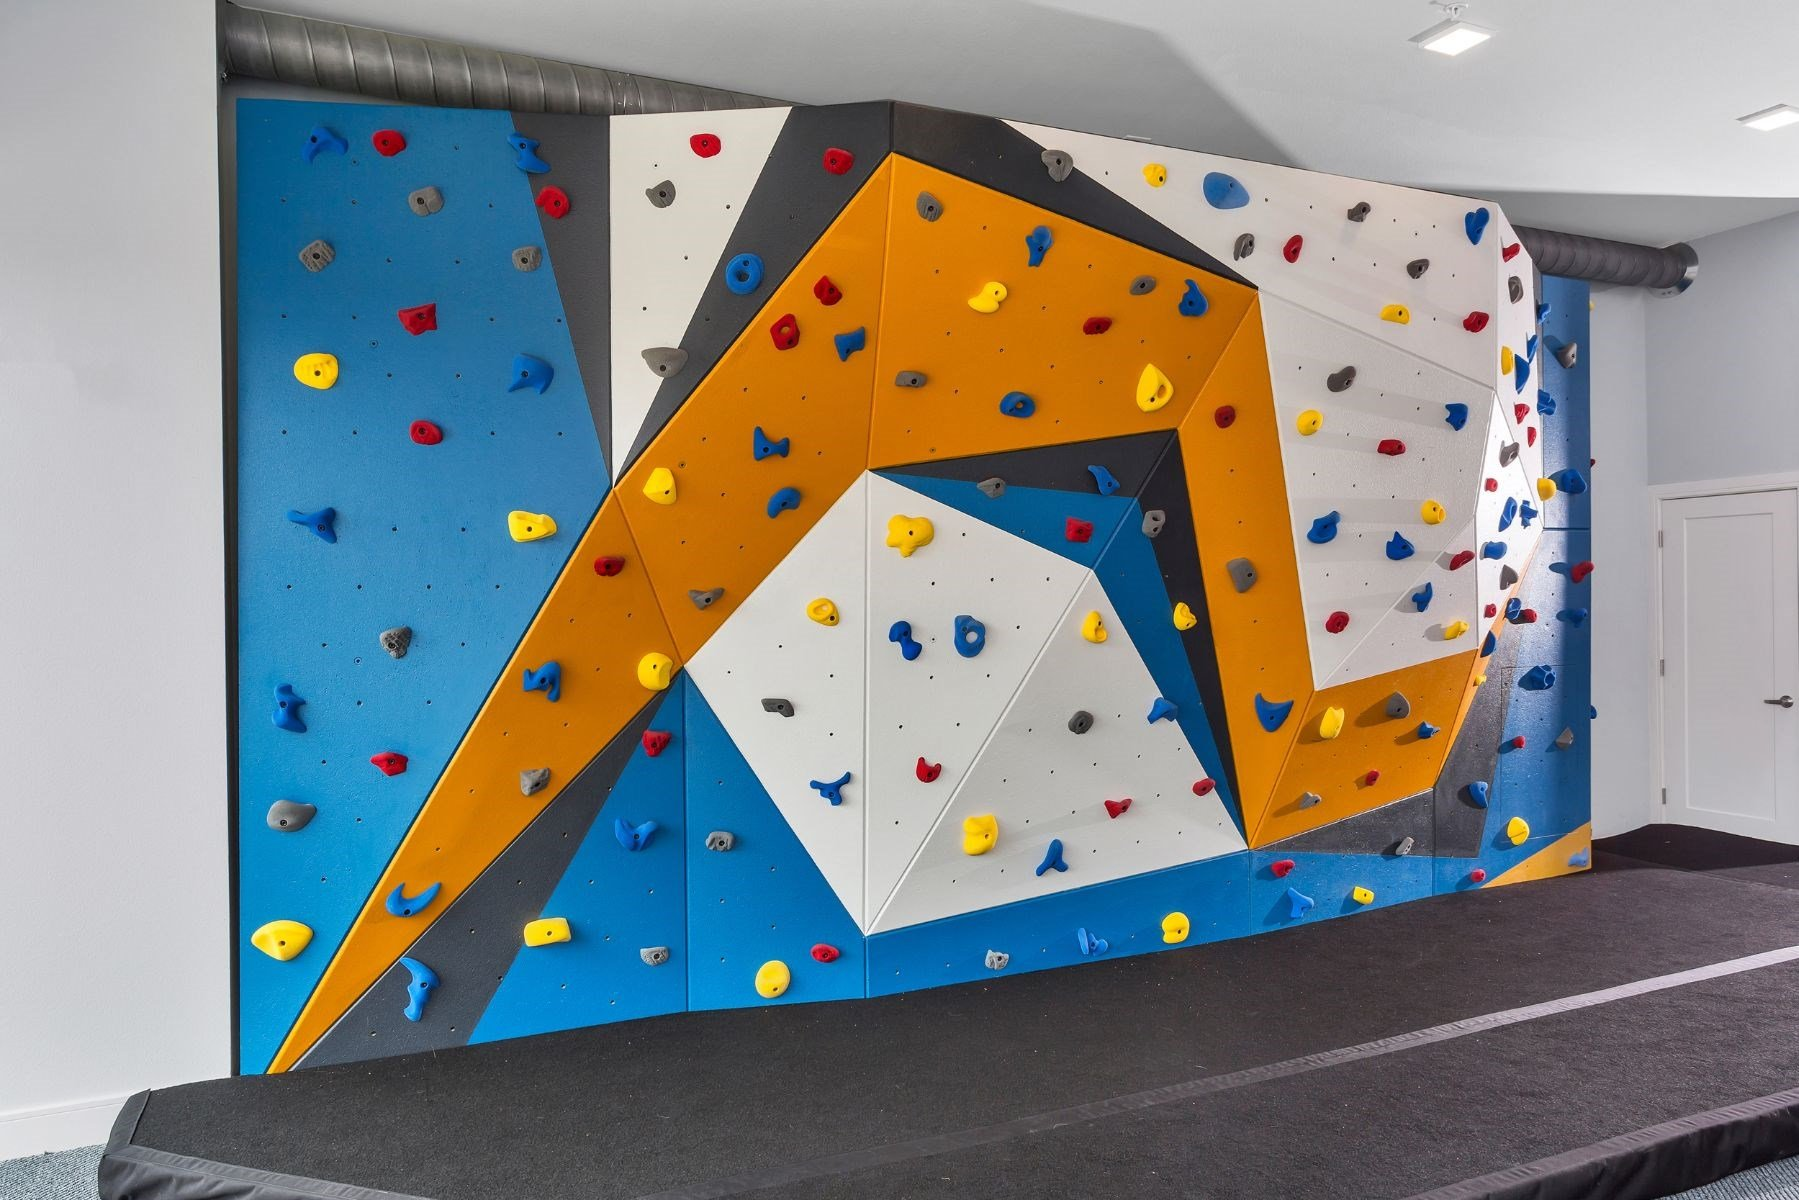 Westwood Green Apartments Clubhouse Rock Climbing Wall